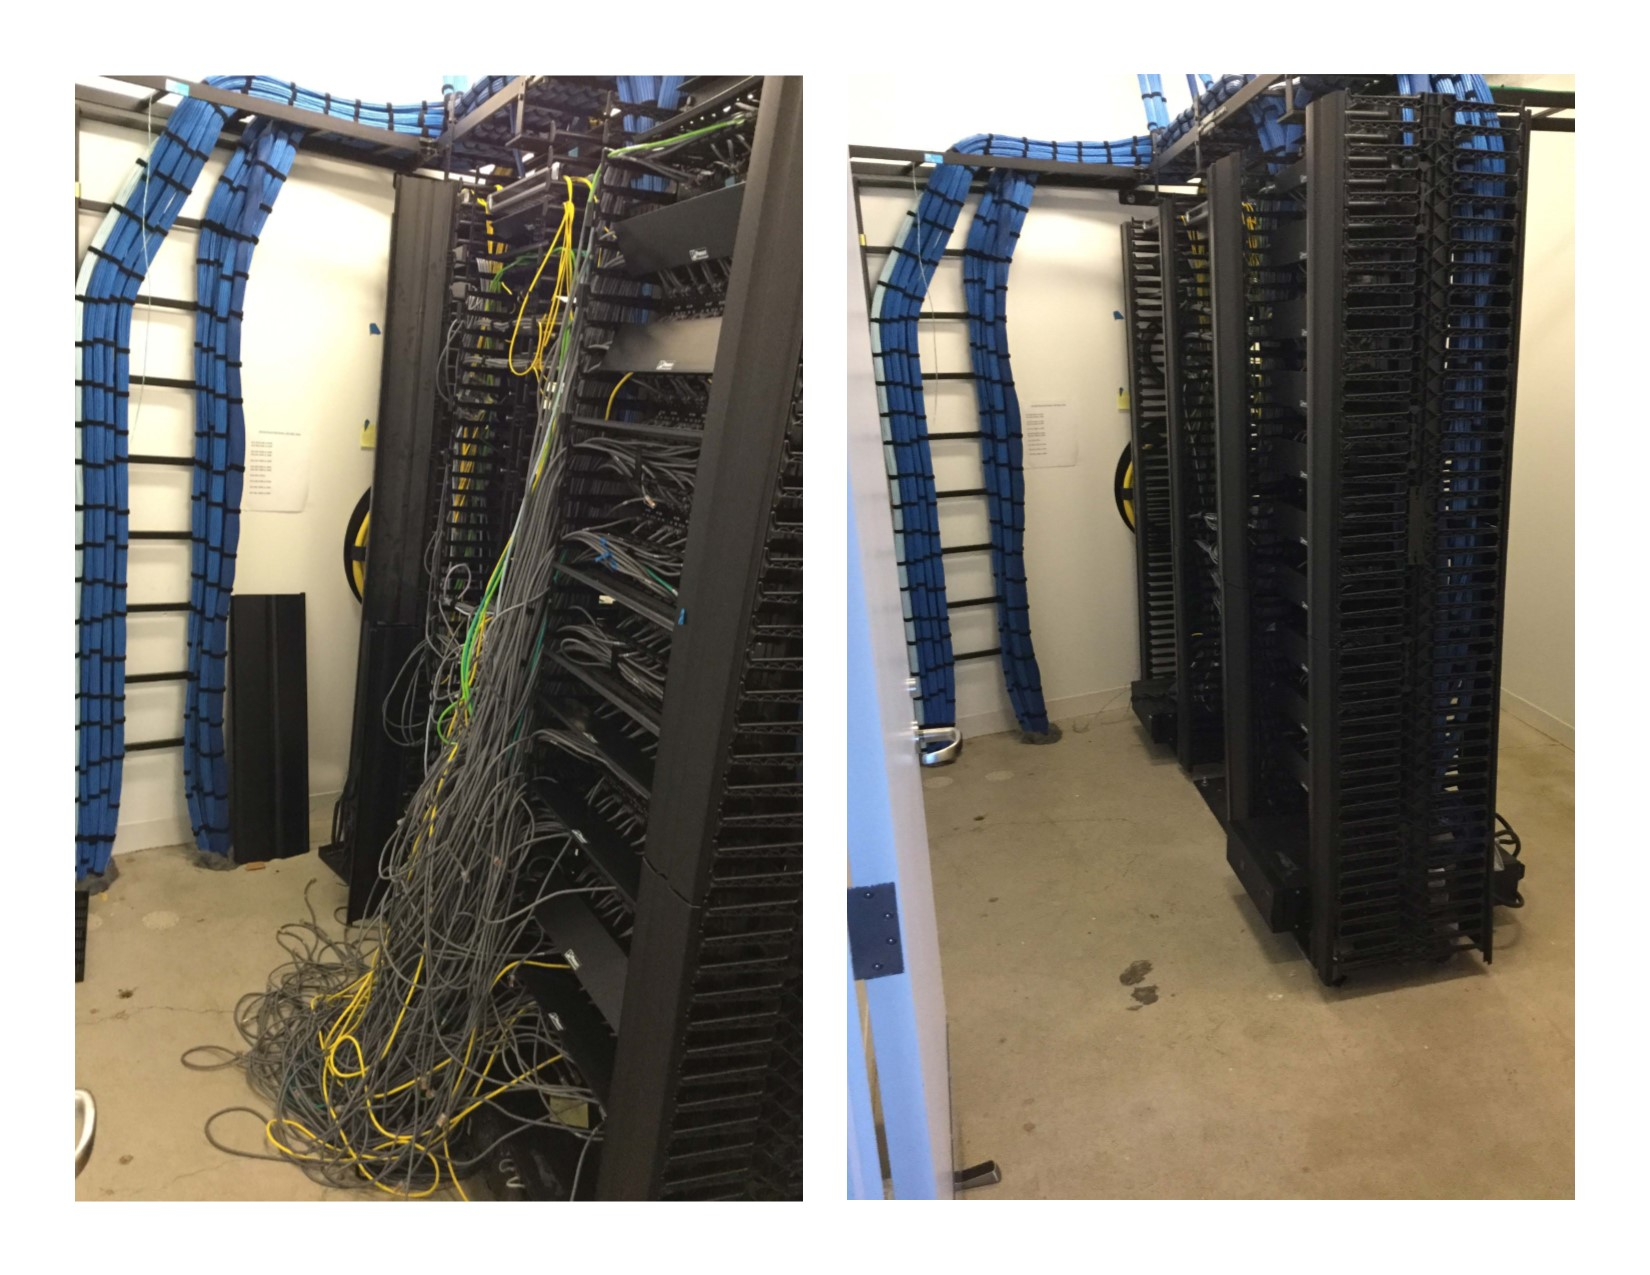 Telcom Rack Cleanup Before And After